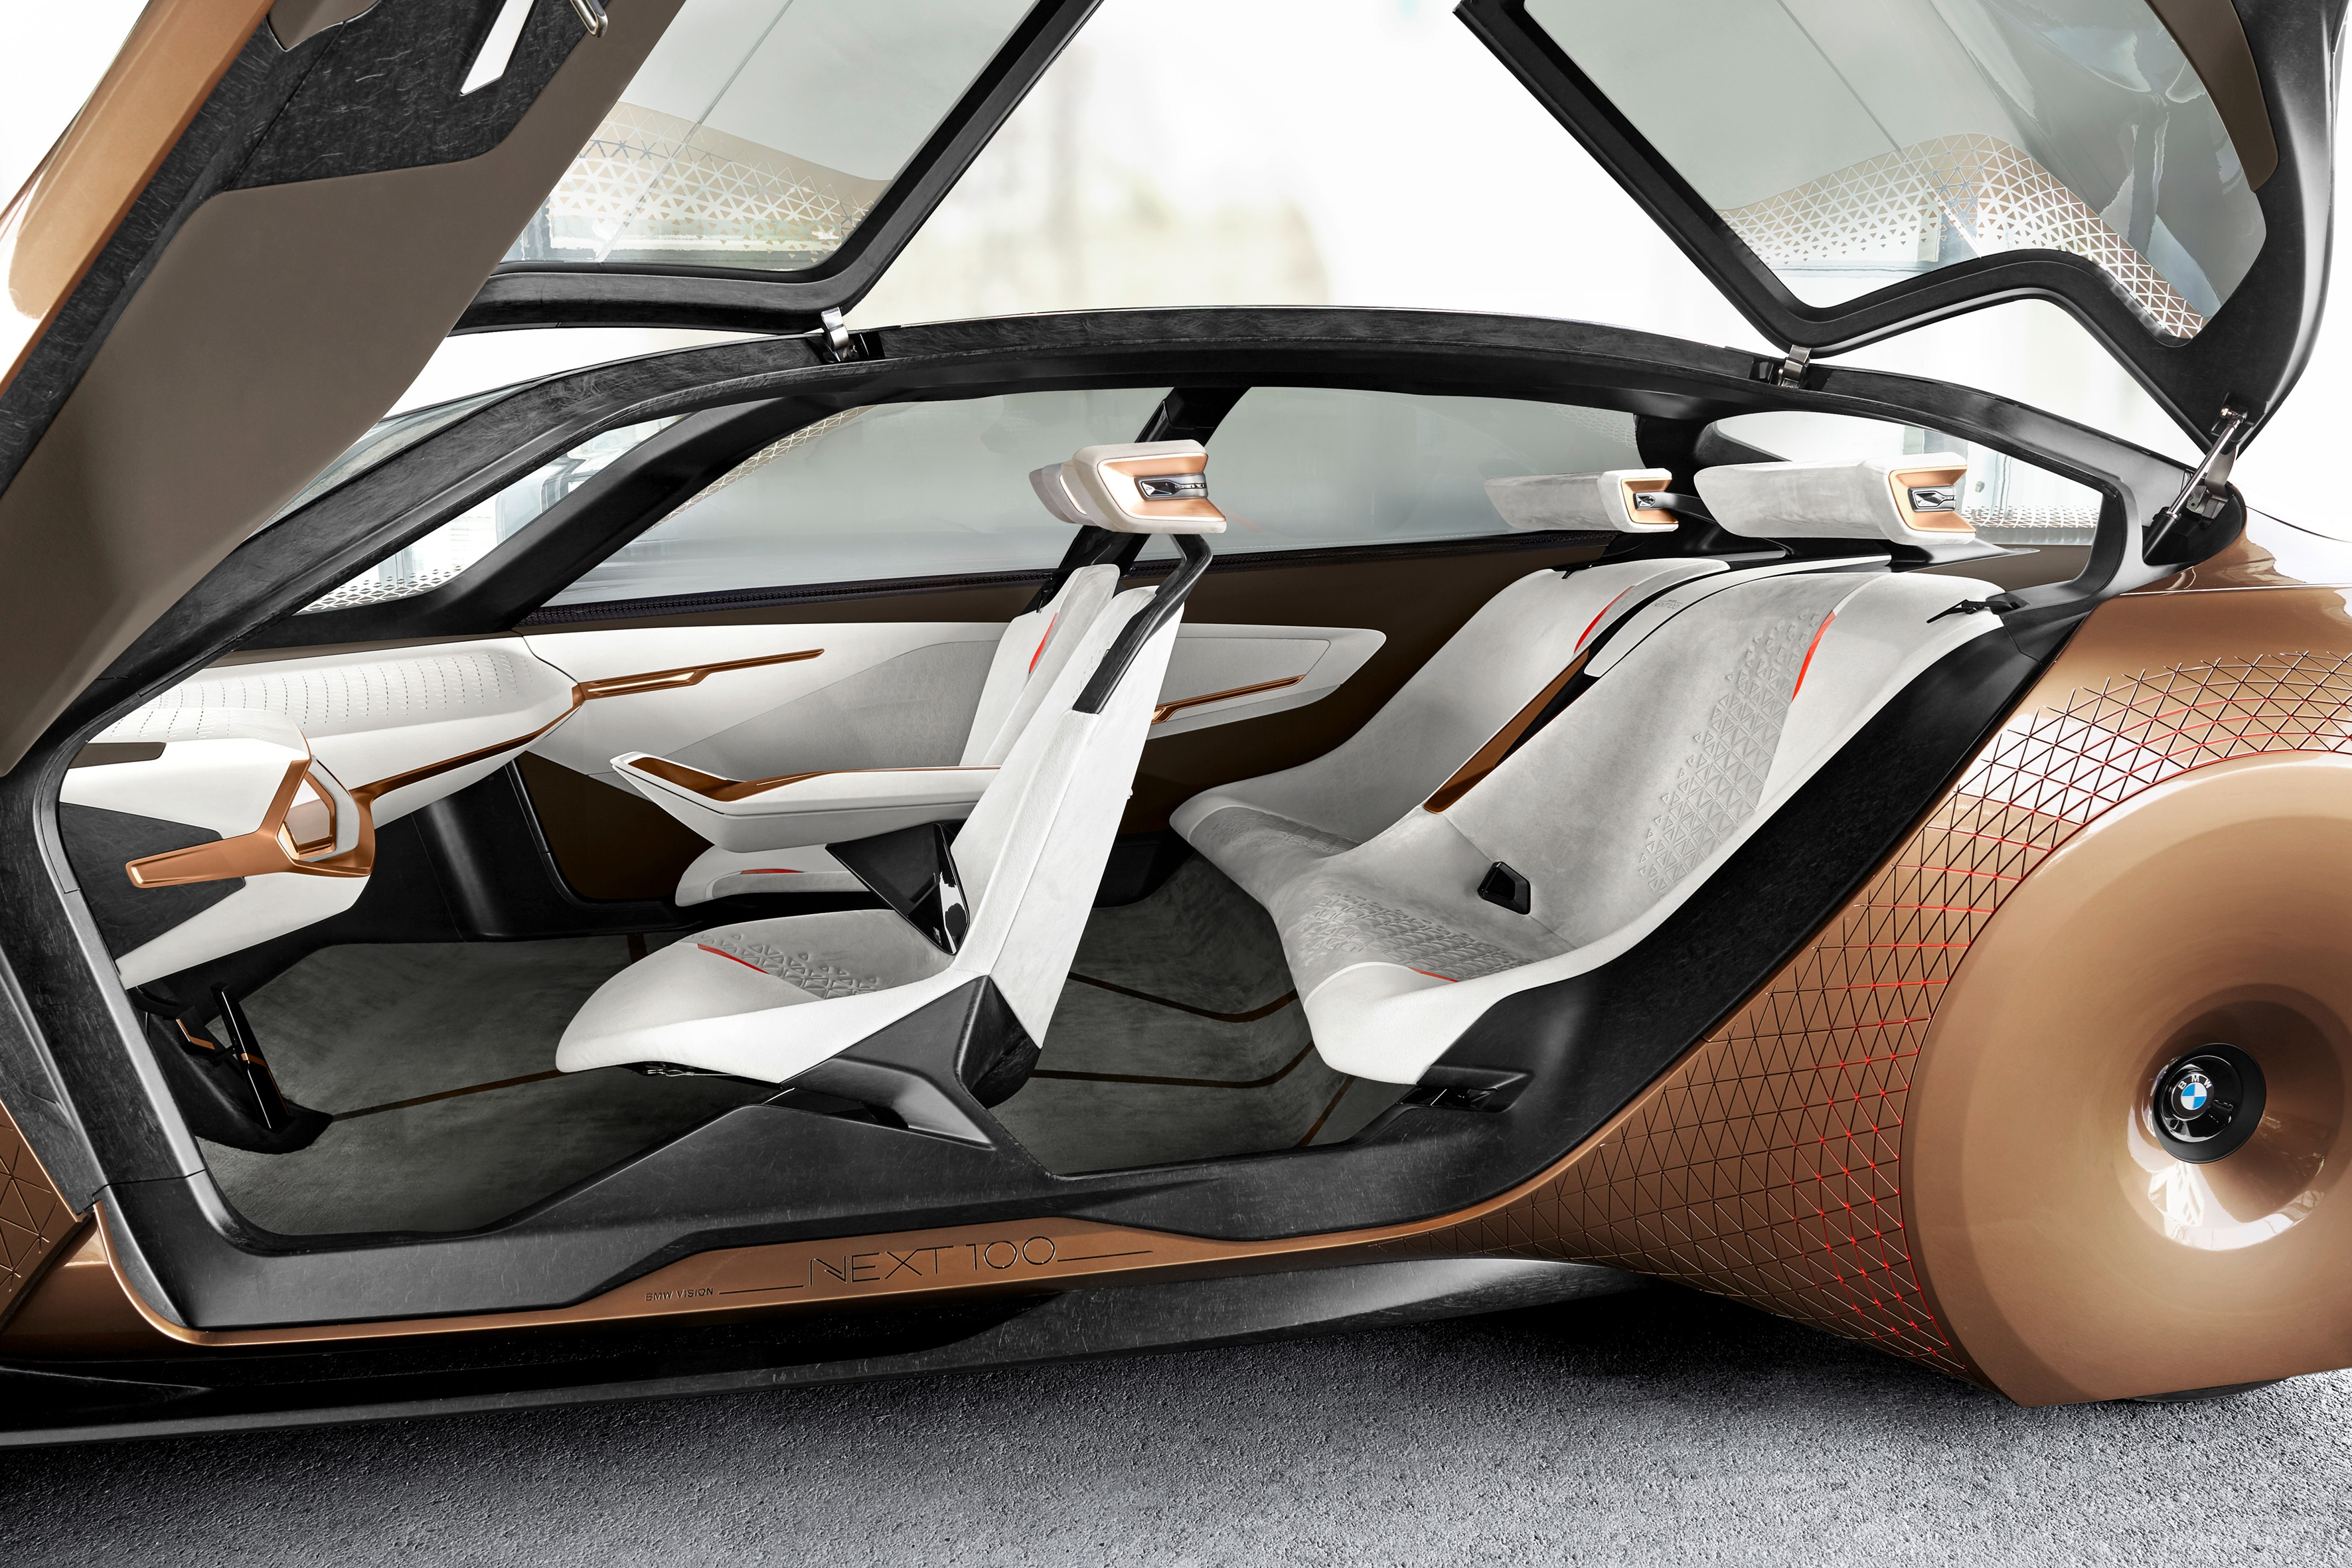 wallpaper bmw vision next 100 future cars interior cars bikes 10656. Black Bedroom Furniture Sets. Home Design Ideas